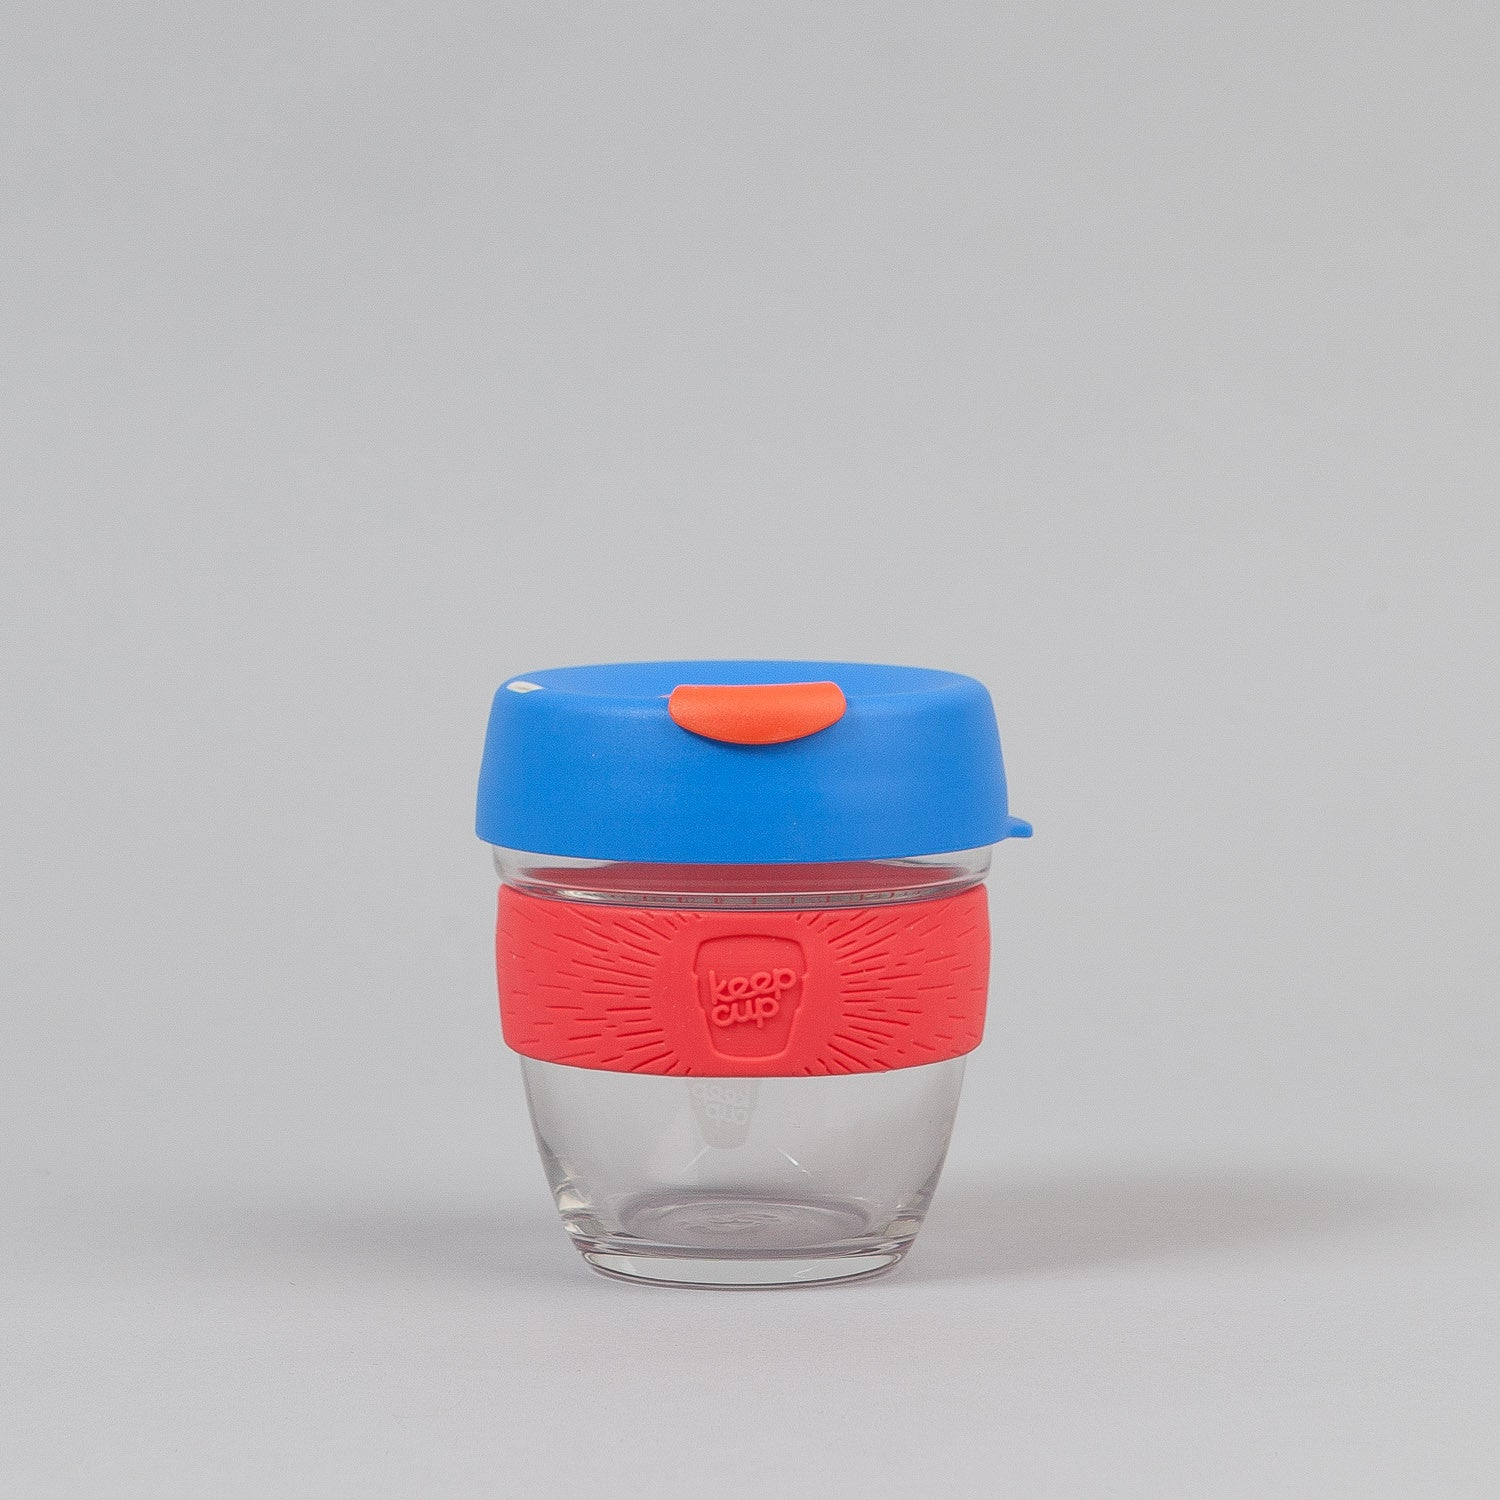 KeepCup Elixir 8oz Small Glass Coffee Cup - New Blue